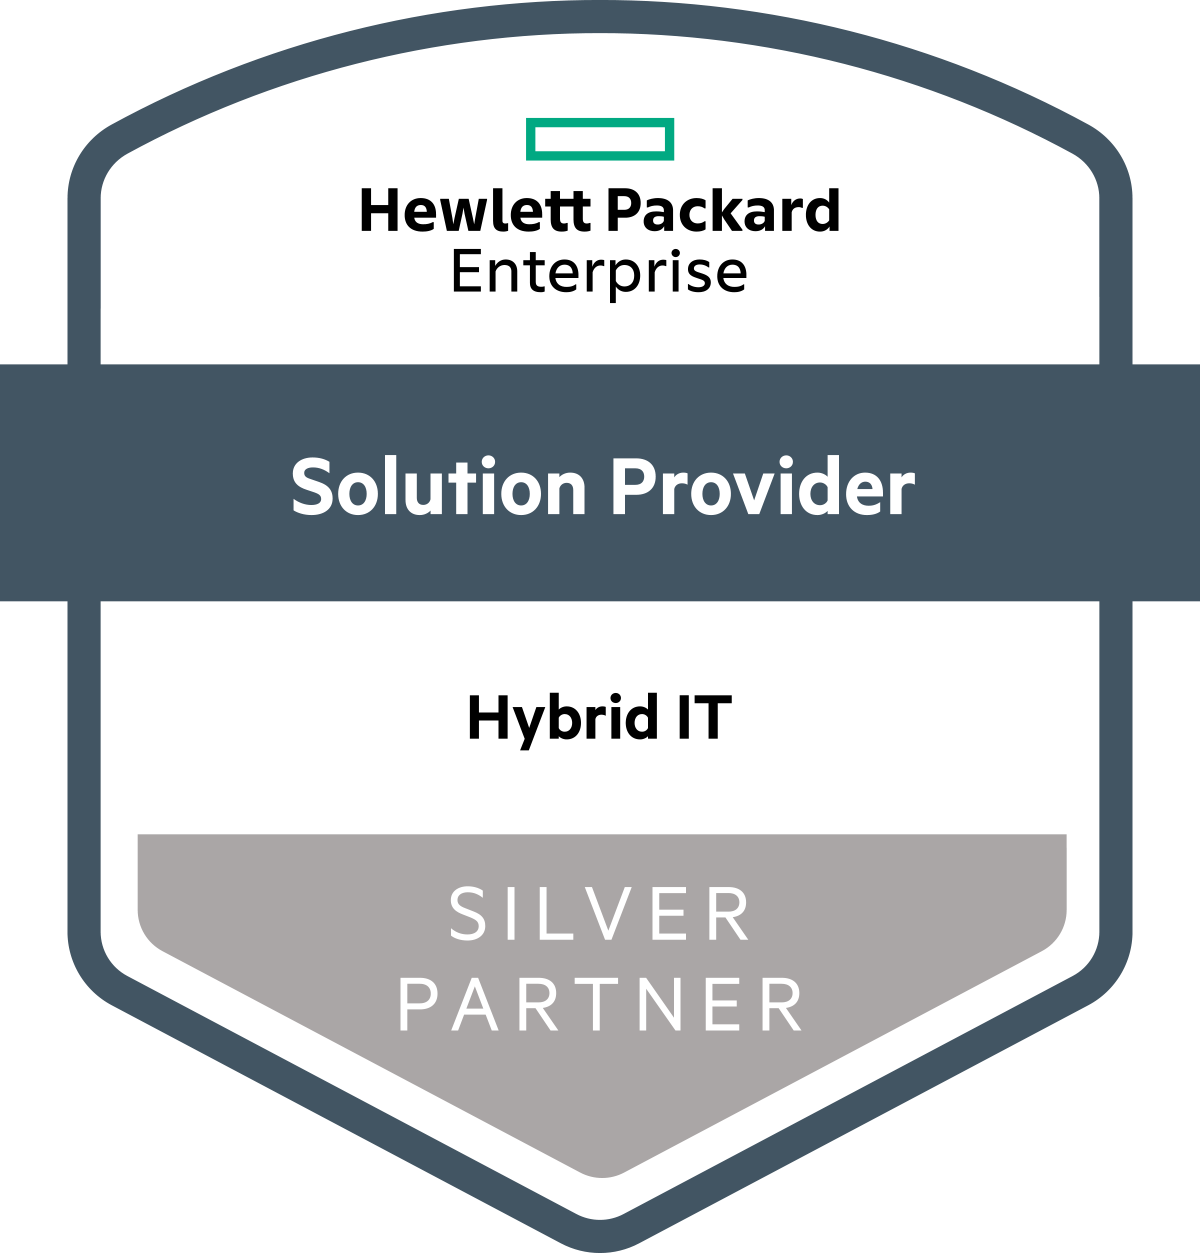 Hewlett Packard Enterprise - Solution Provider Hybrid IT Silver Partner